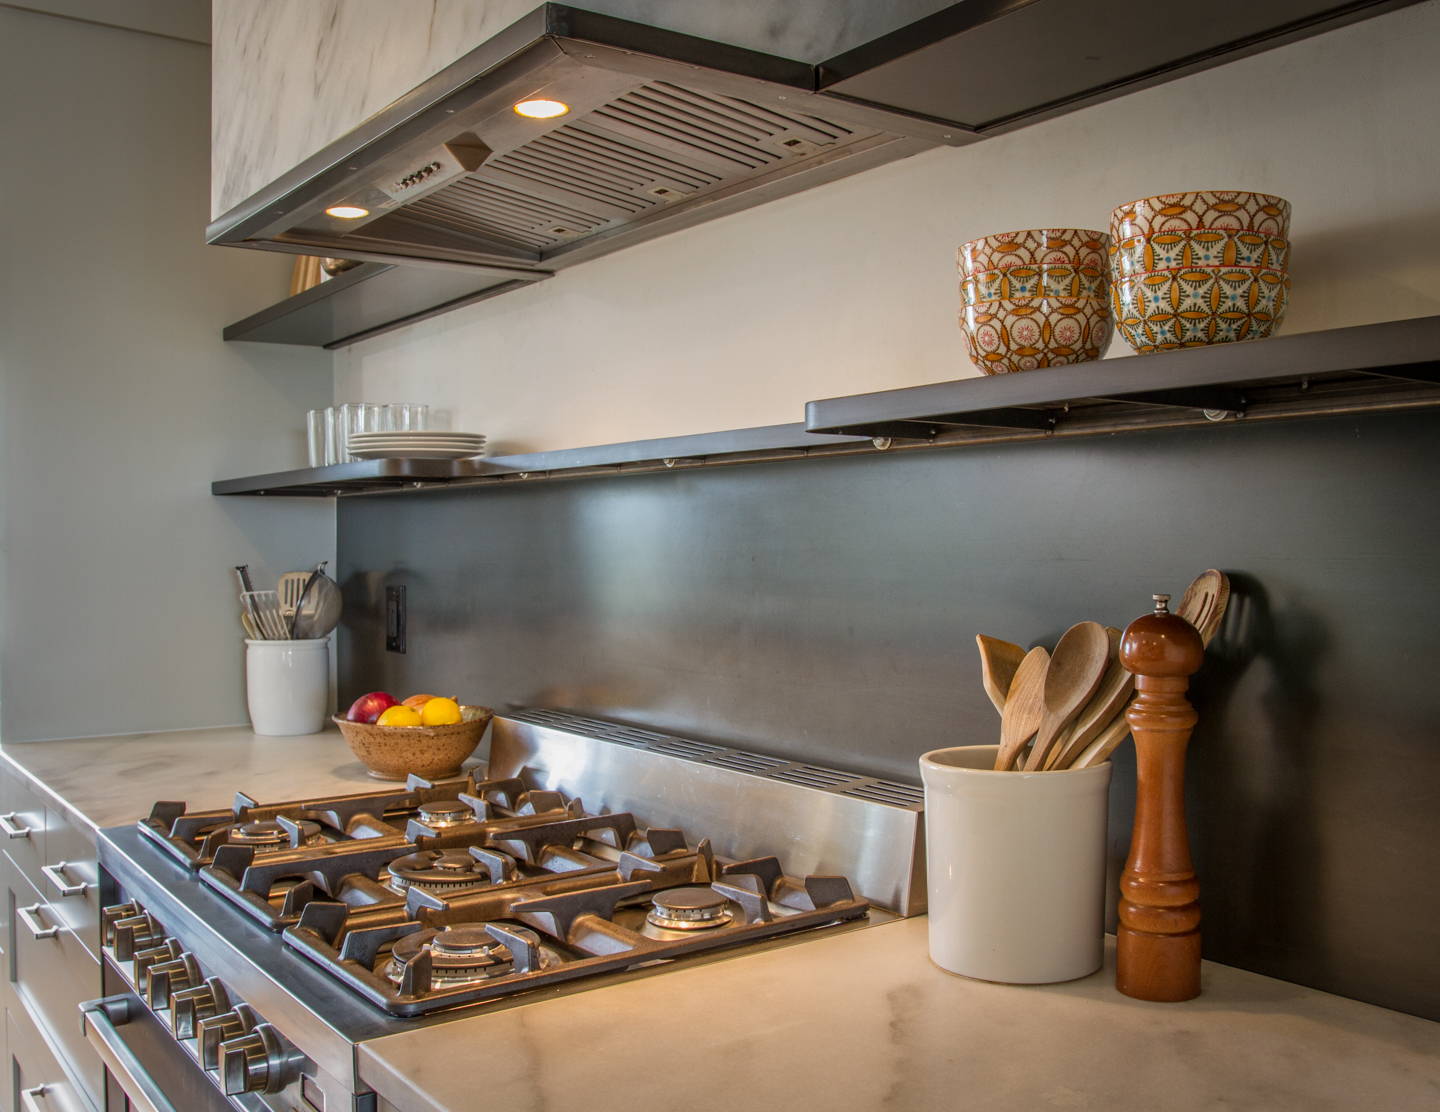 Hot Rolled Steel KItchen Backsplash With Floating Shelving